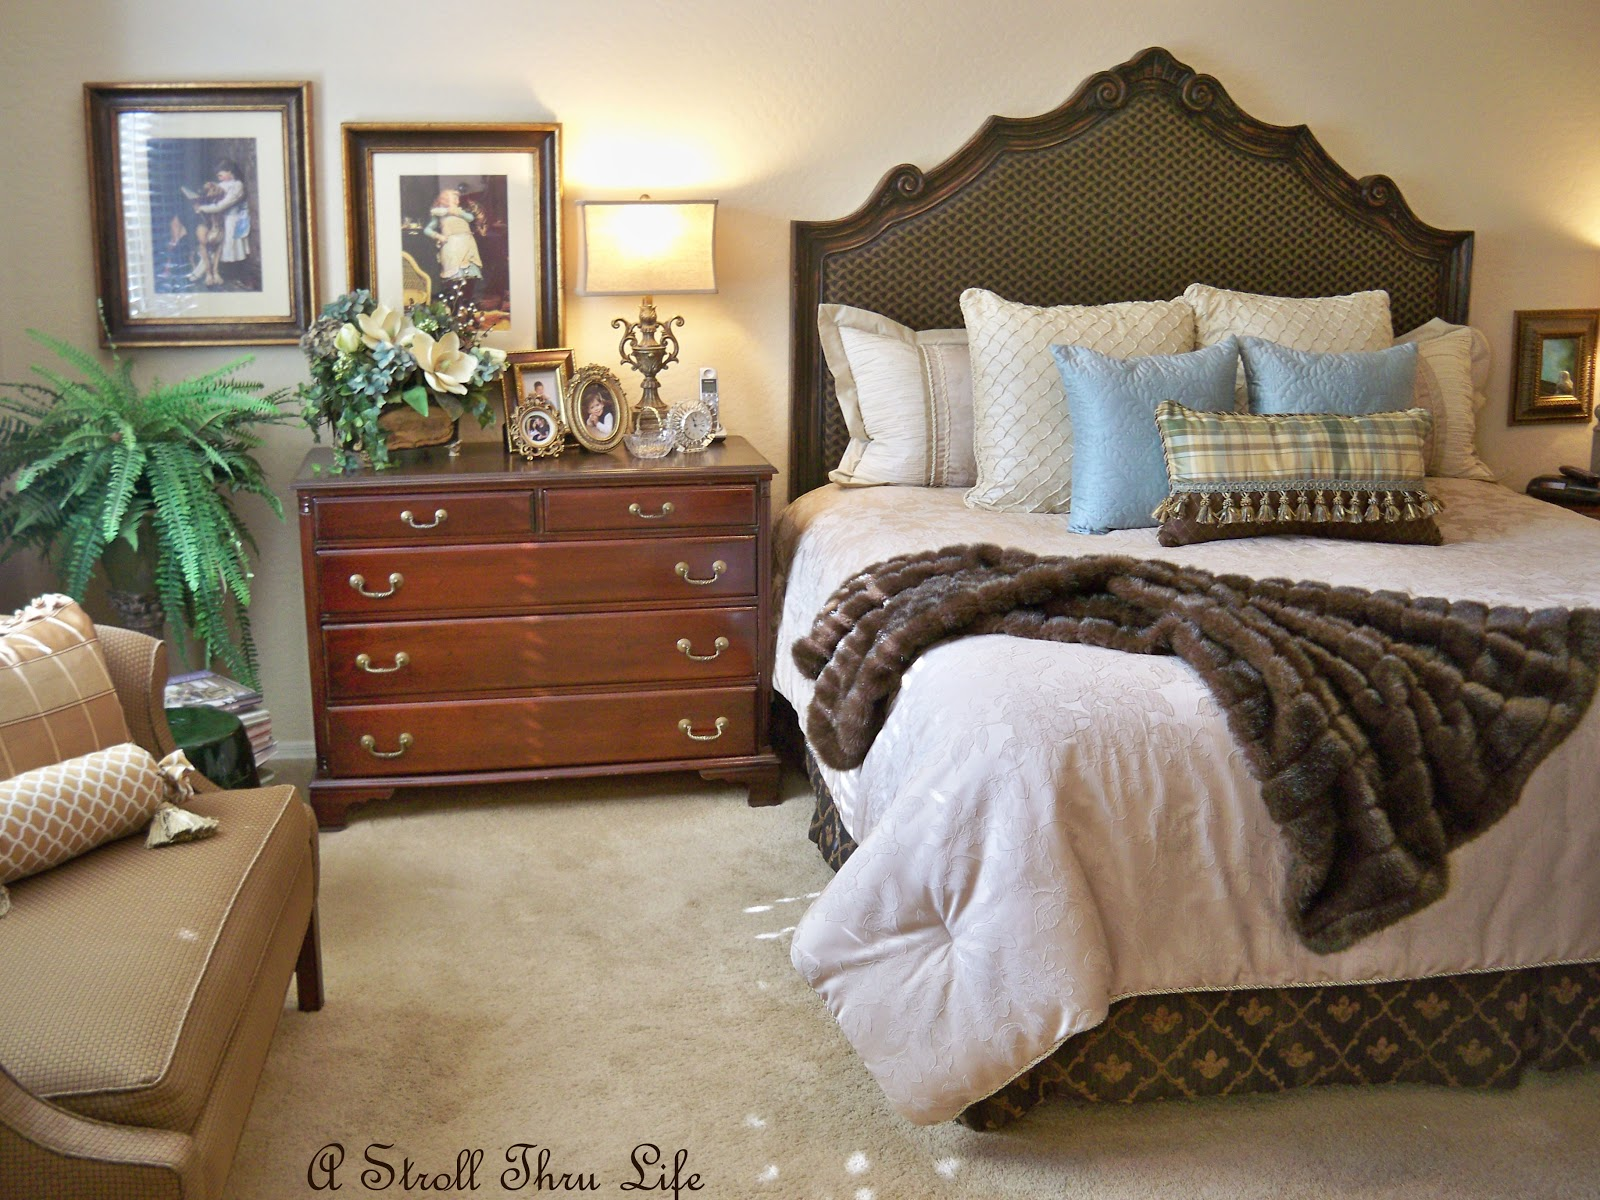 Master Bedroom Up Or Down a stroll thru life: one room down - - master bedroom